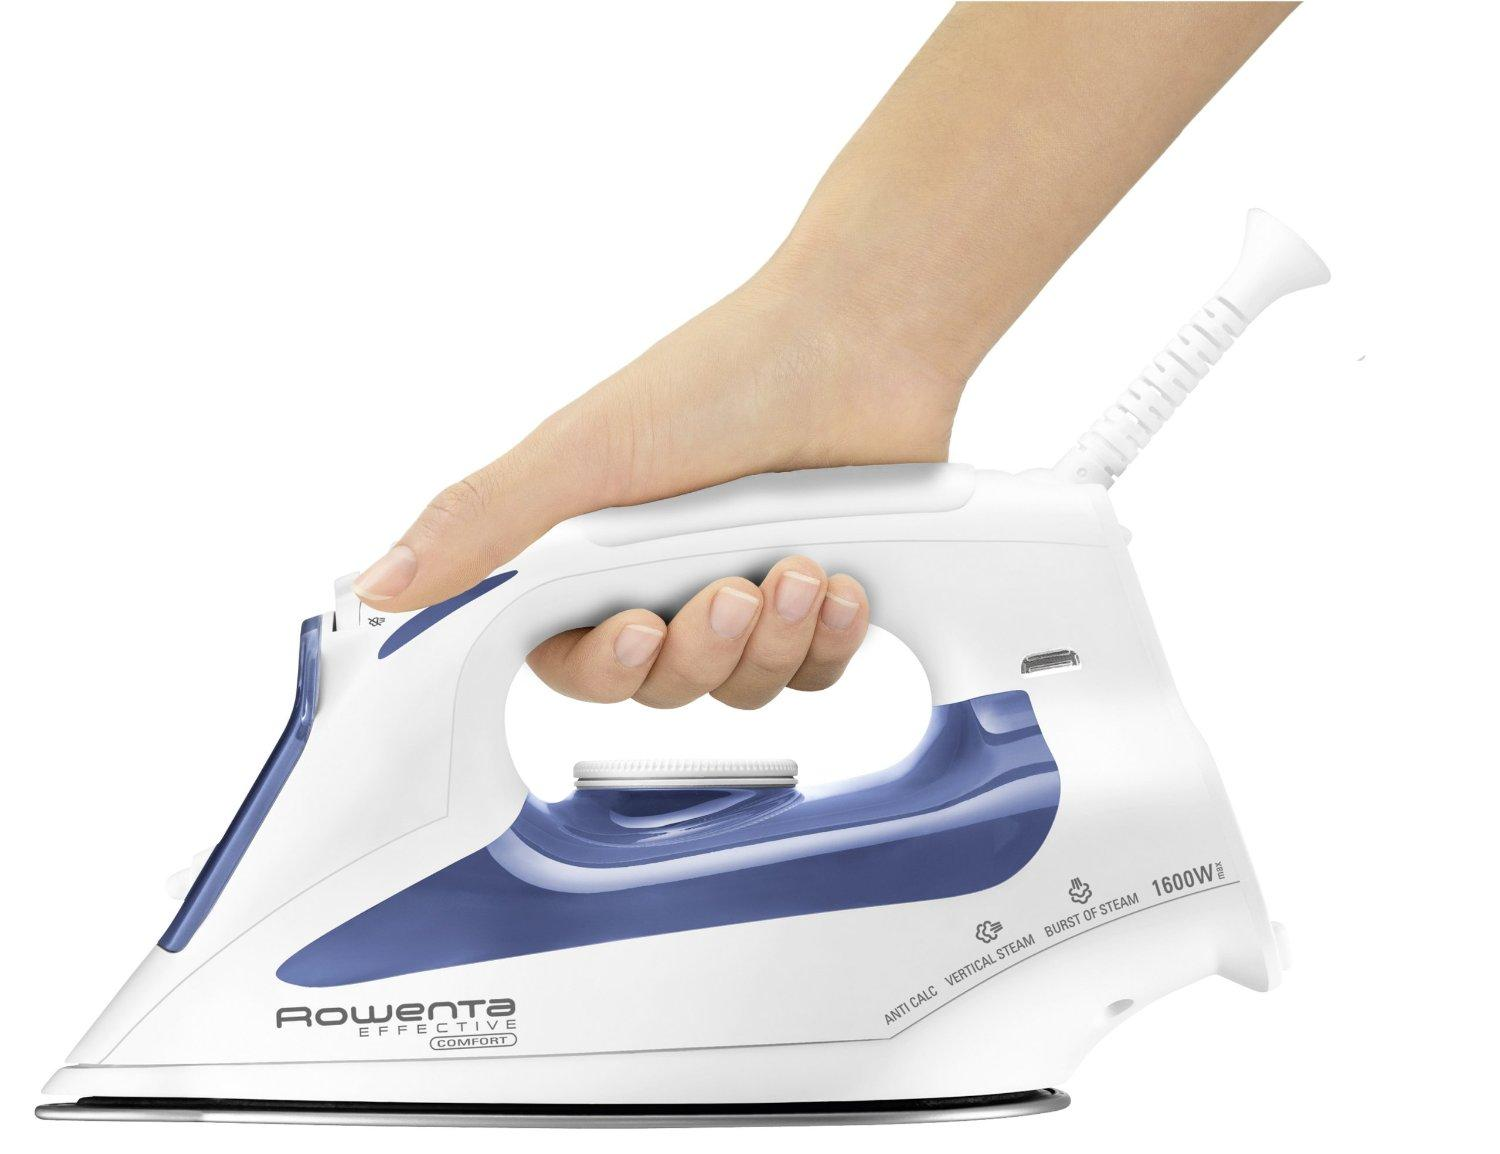 Rowenta DW2070 Effective Comfort Auto Shut Off 300-Hole Stainless Steel Soleplate Steam Iron